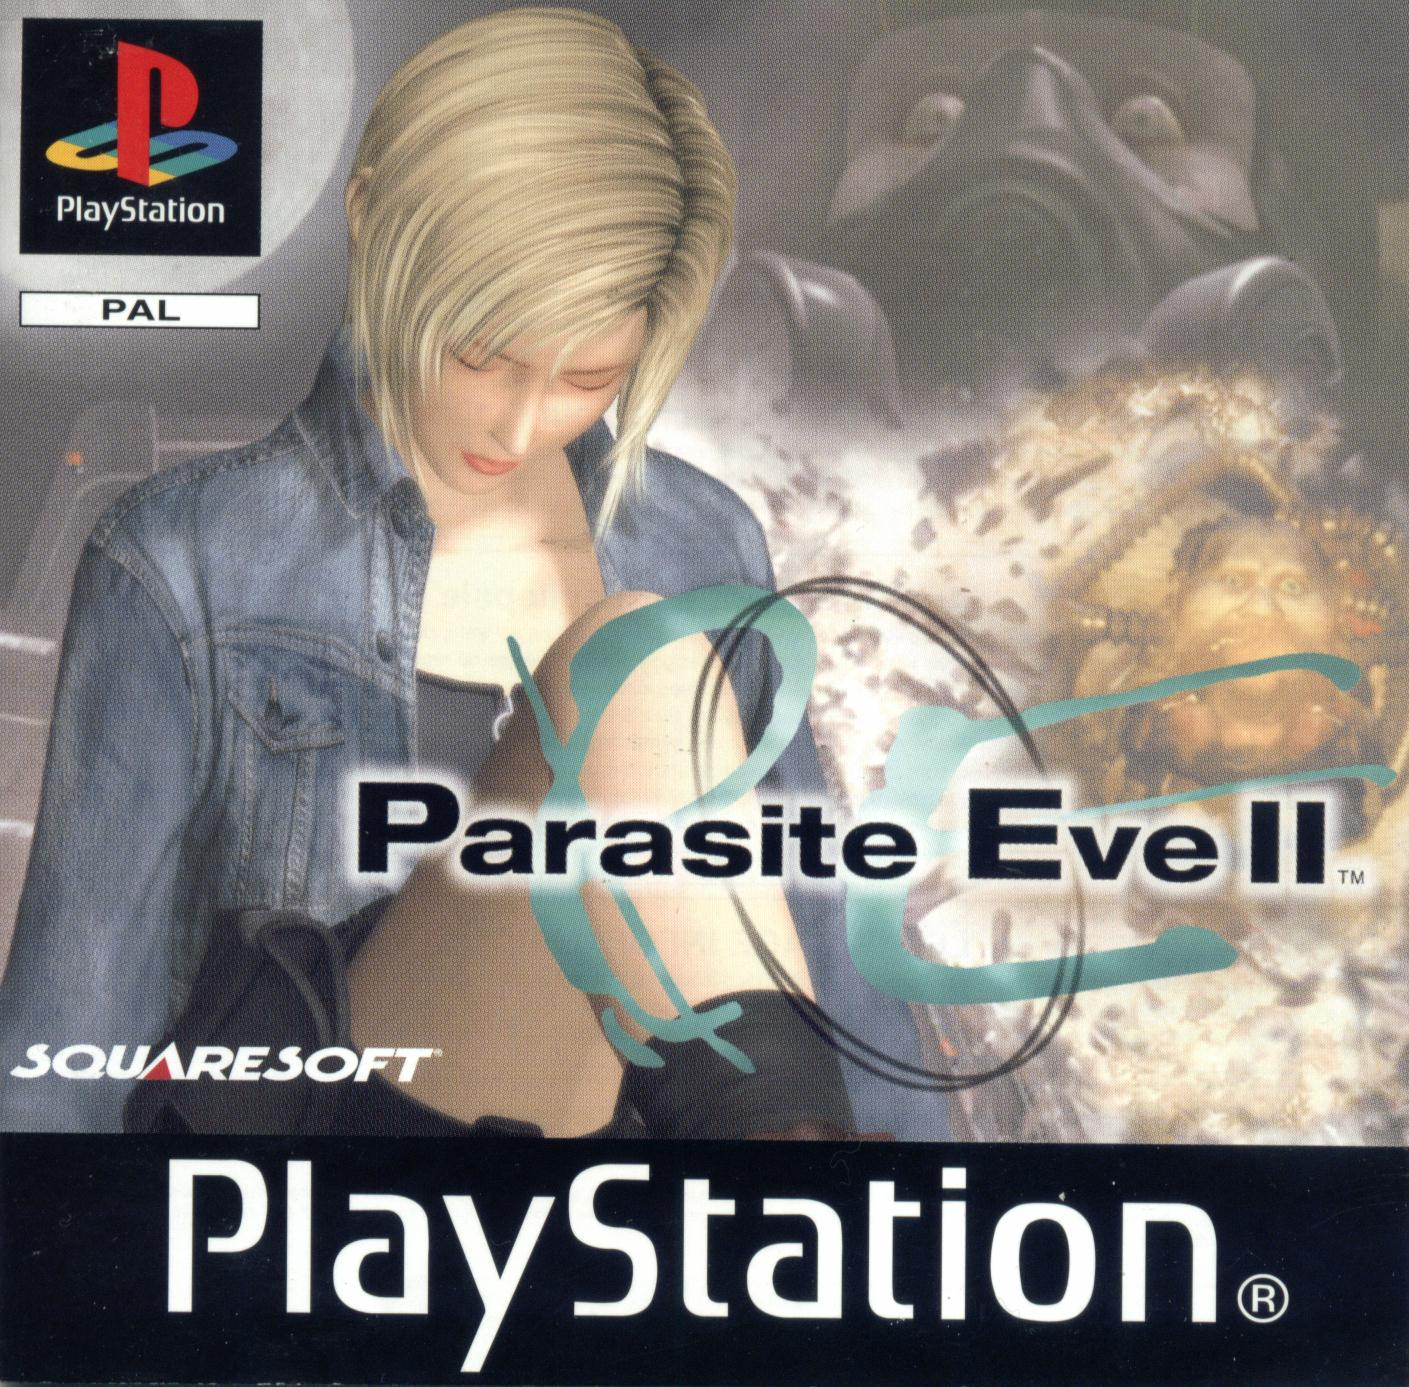 Parasite Eve 1 and 2 price and release dates set